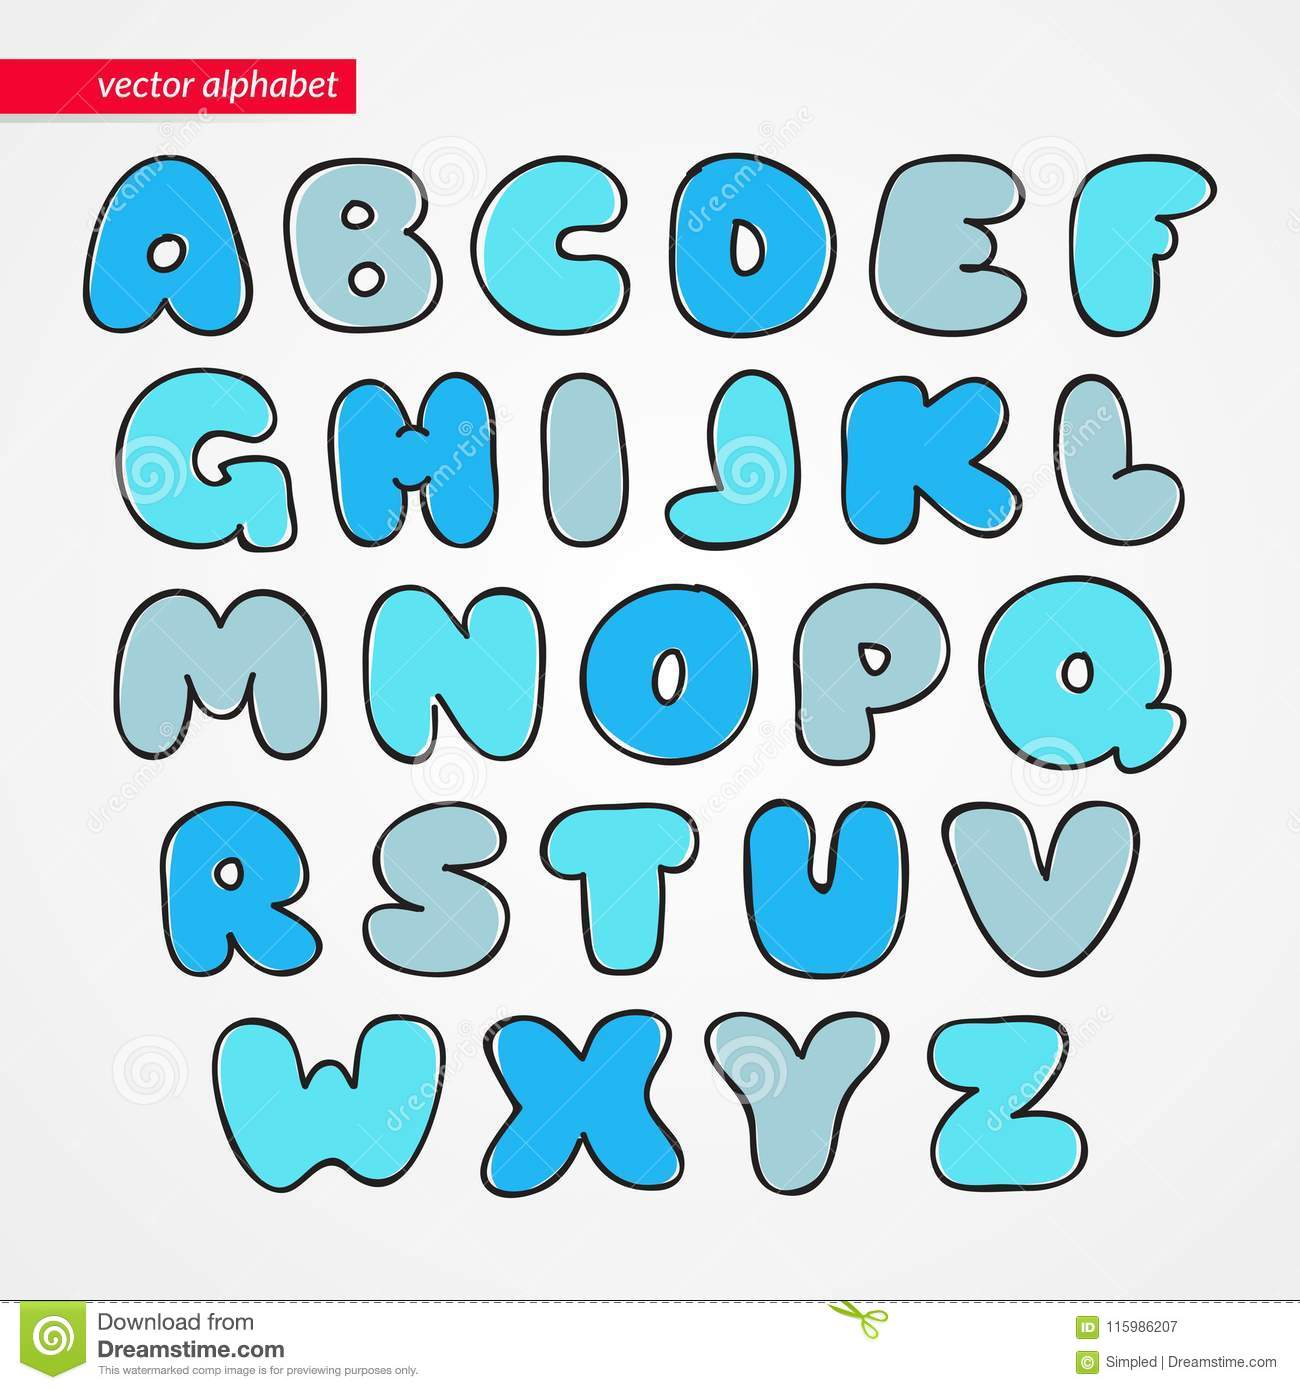 Abc Sketch Latin Font Decorative Funny Isolated Letter Icons For